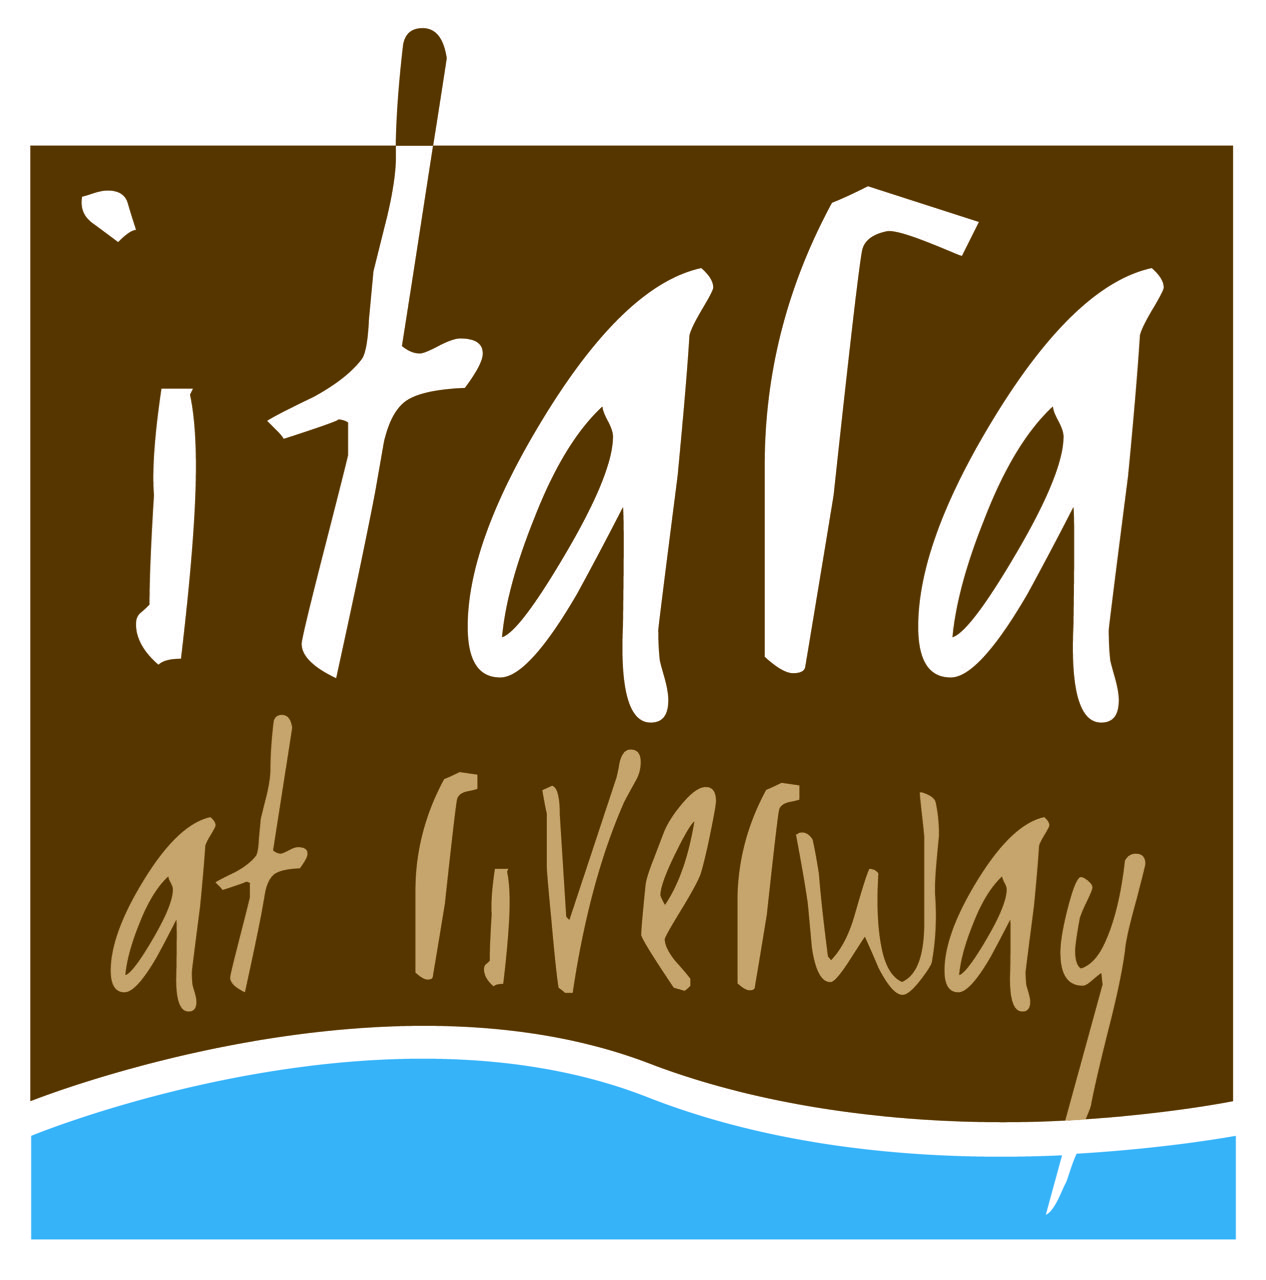 Itara at Riverway